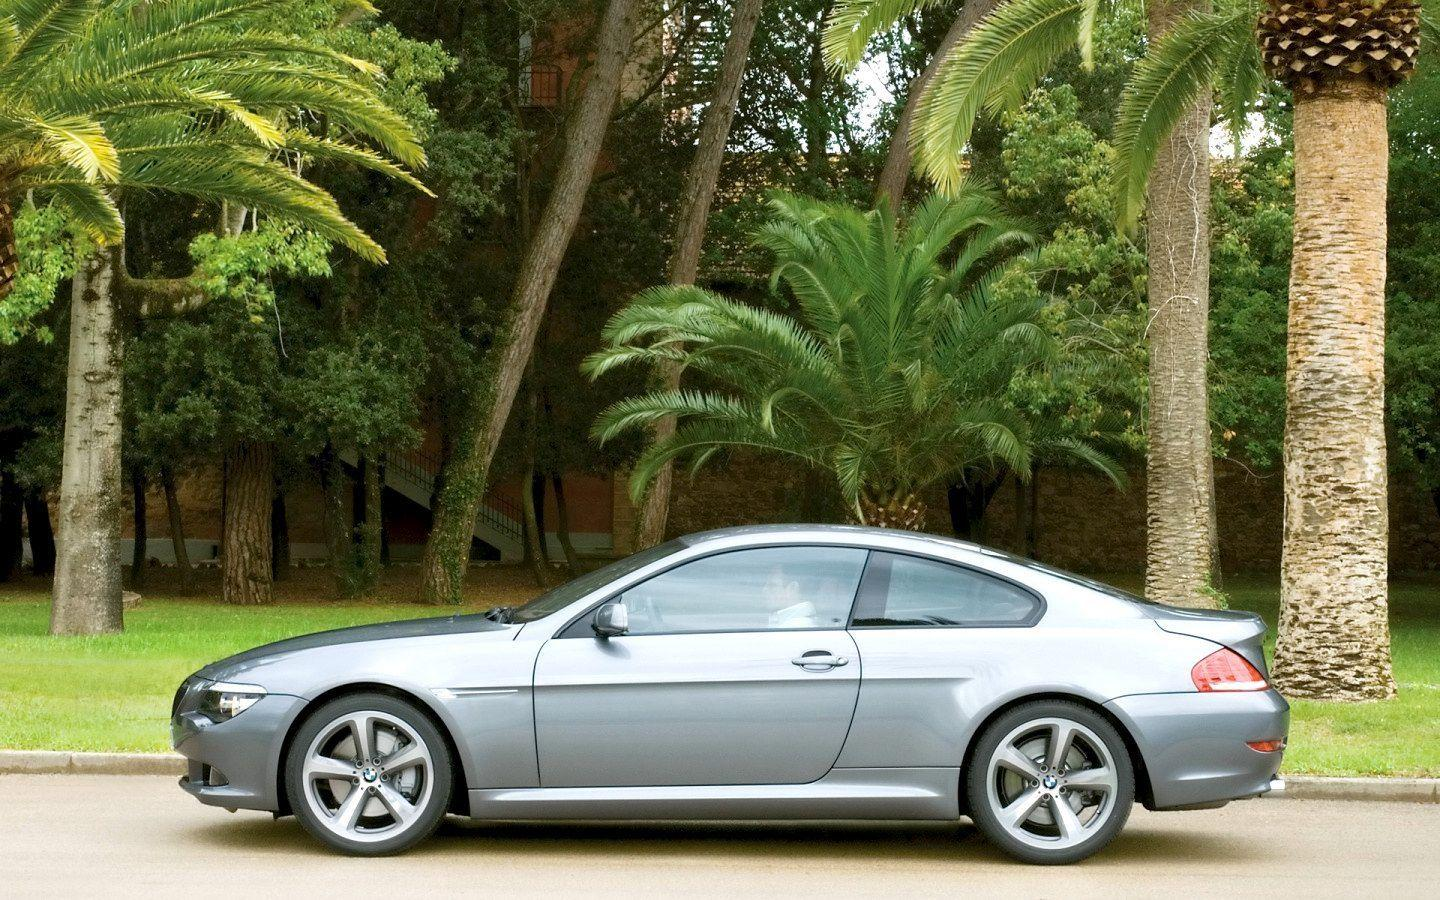 2008 BMW 6 Series Wallpaper 04 - 1440x900